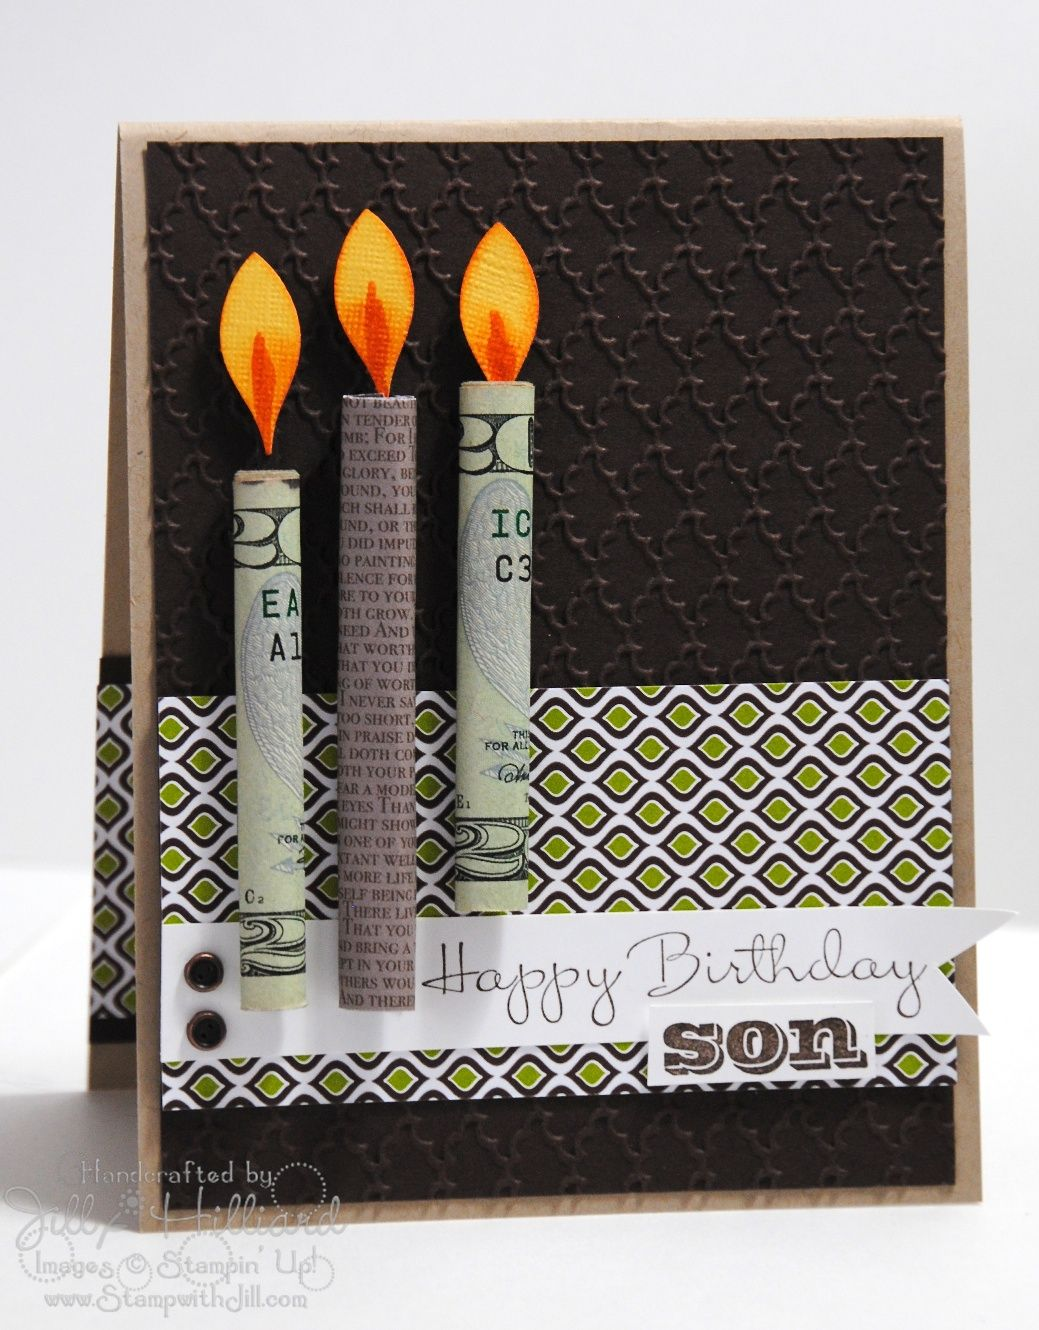 Money Birthday Card - the gift is the rolled up money birthday candle #papercrafts Lembrancinha